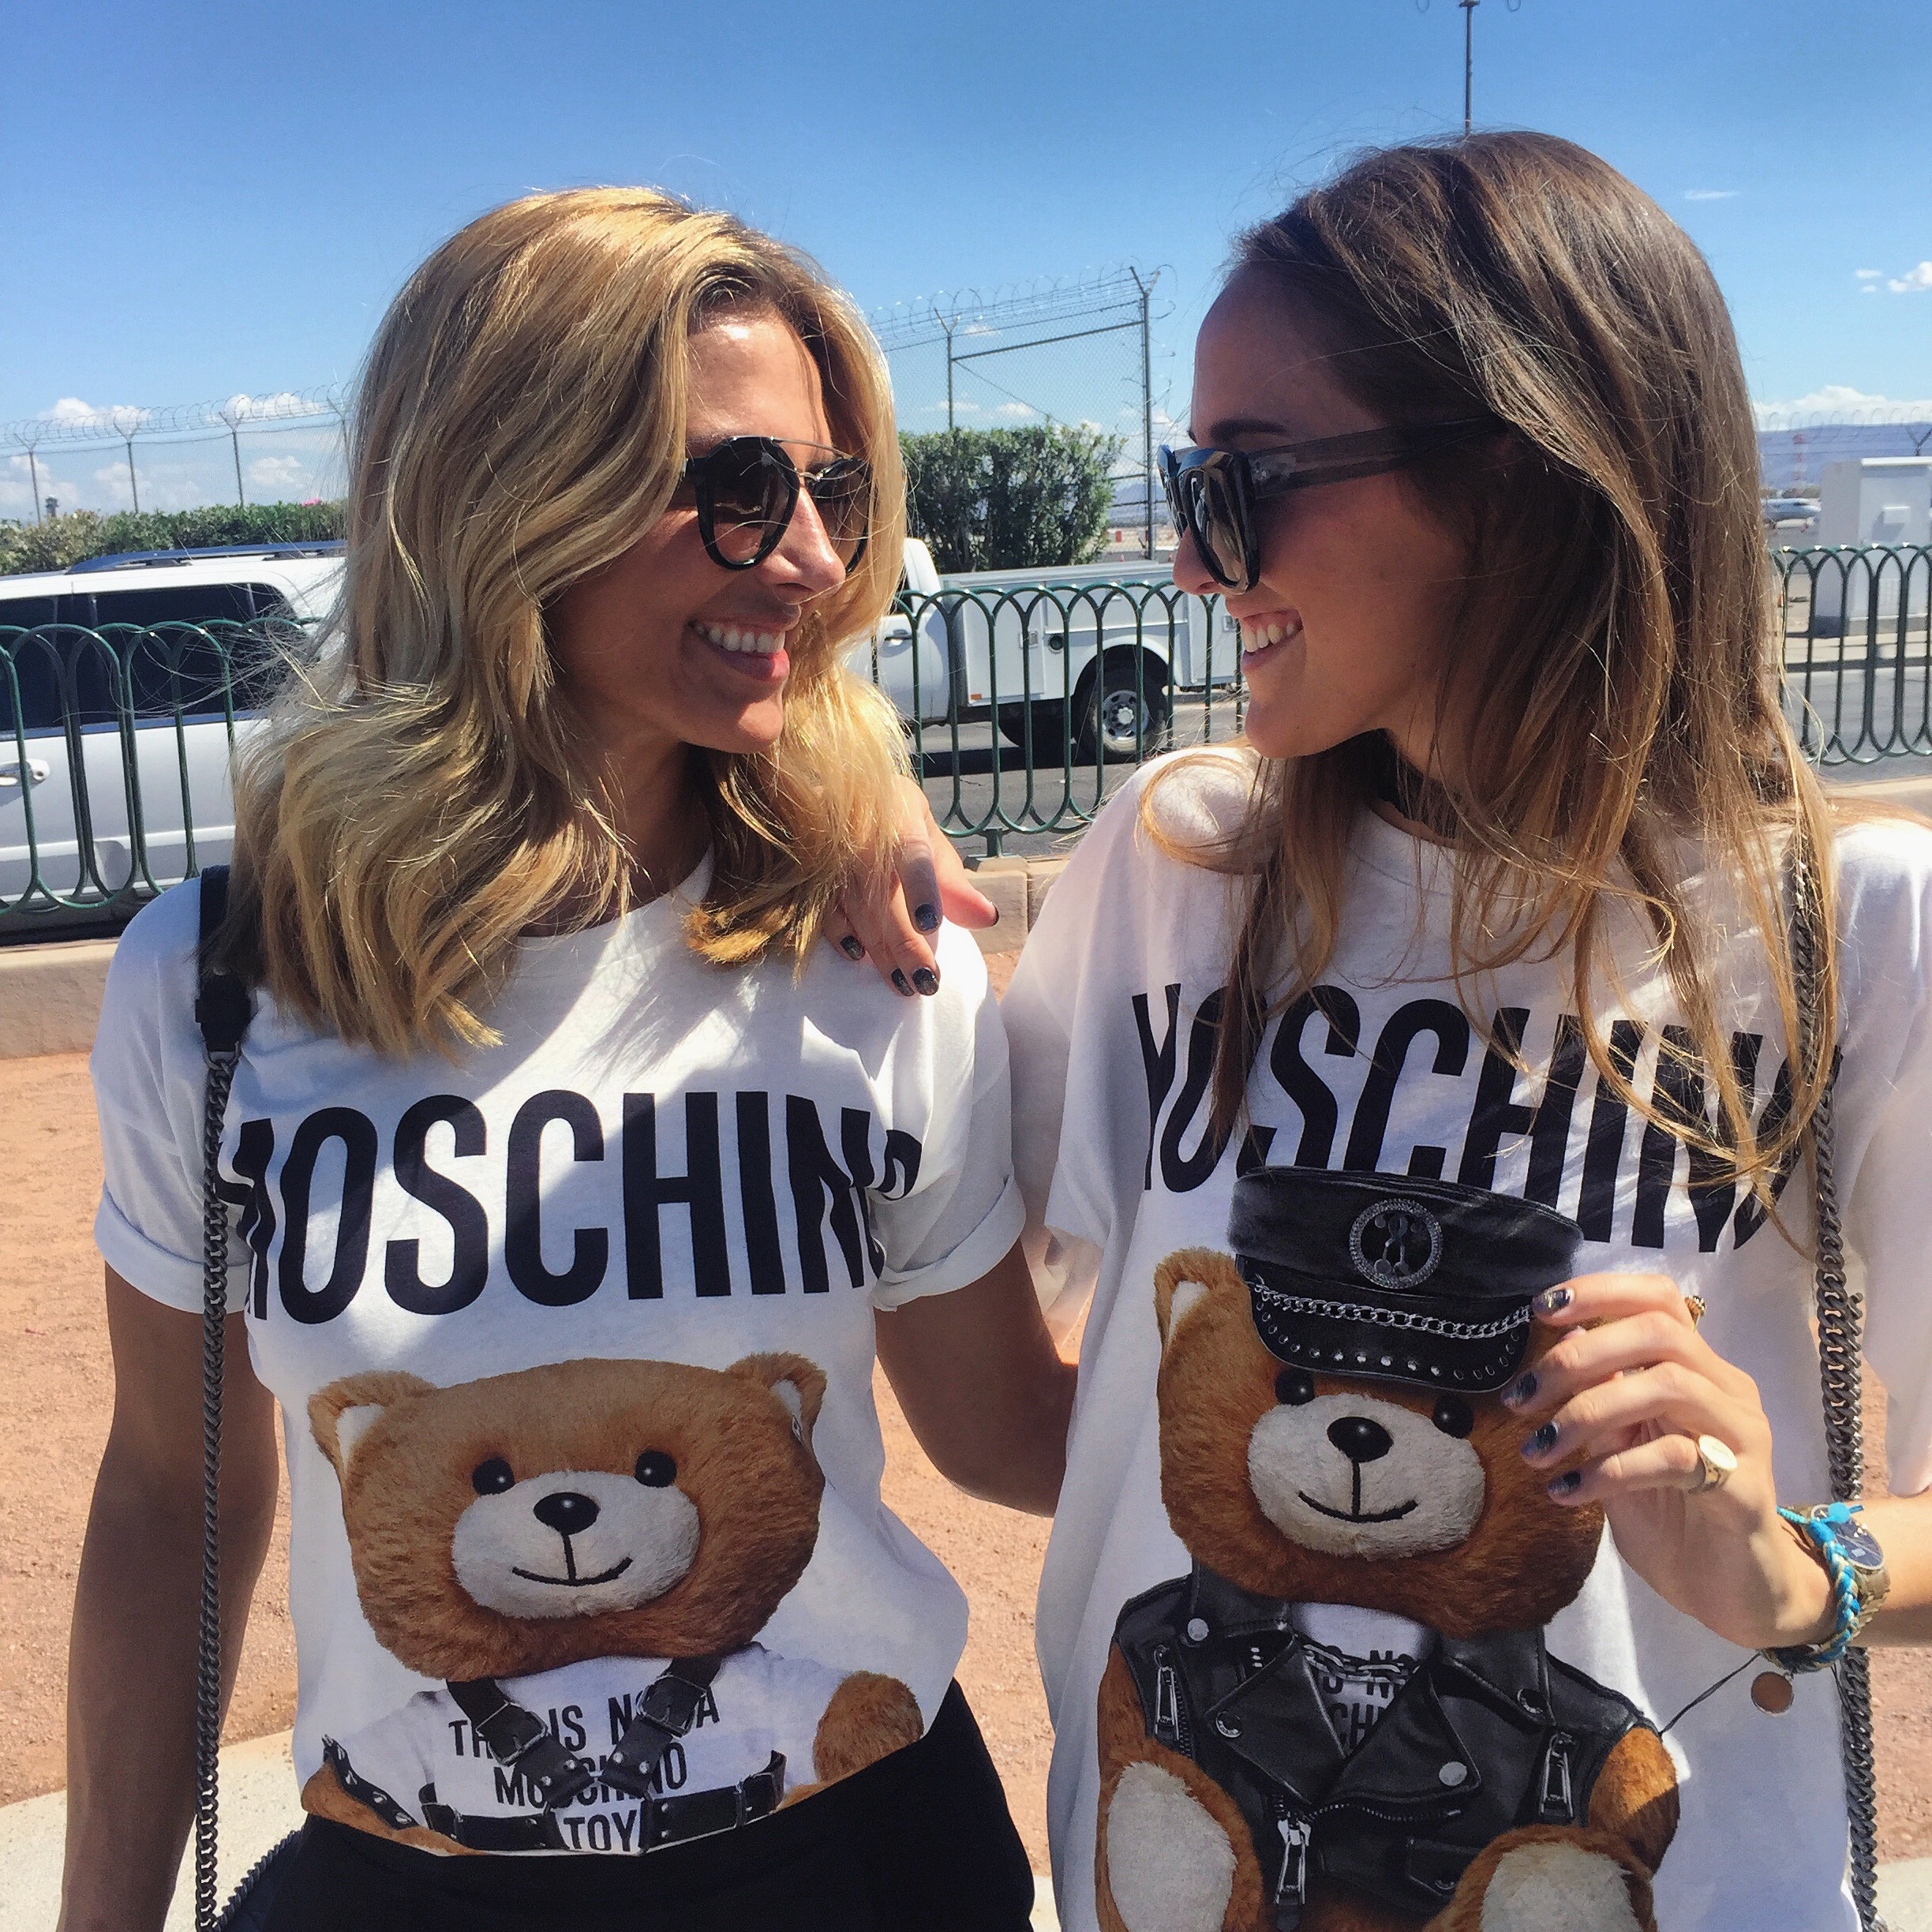 linda_tsetis_worlds_affair_moschino_short_sleeve_t-hirt_friends_fashion_ootd_las_vegas_